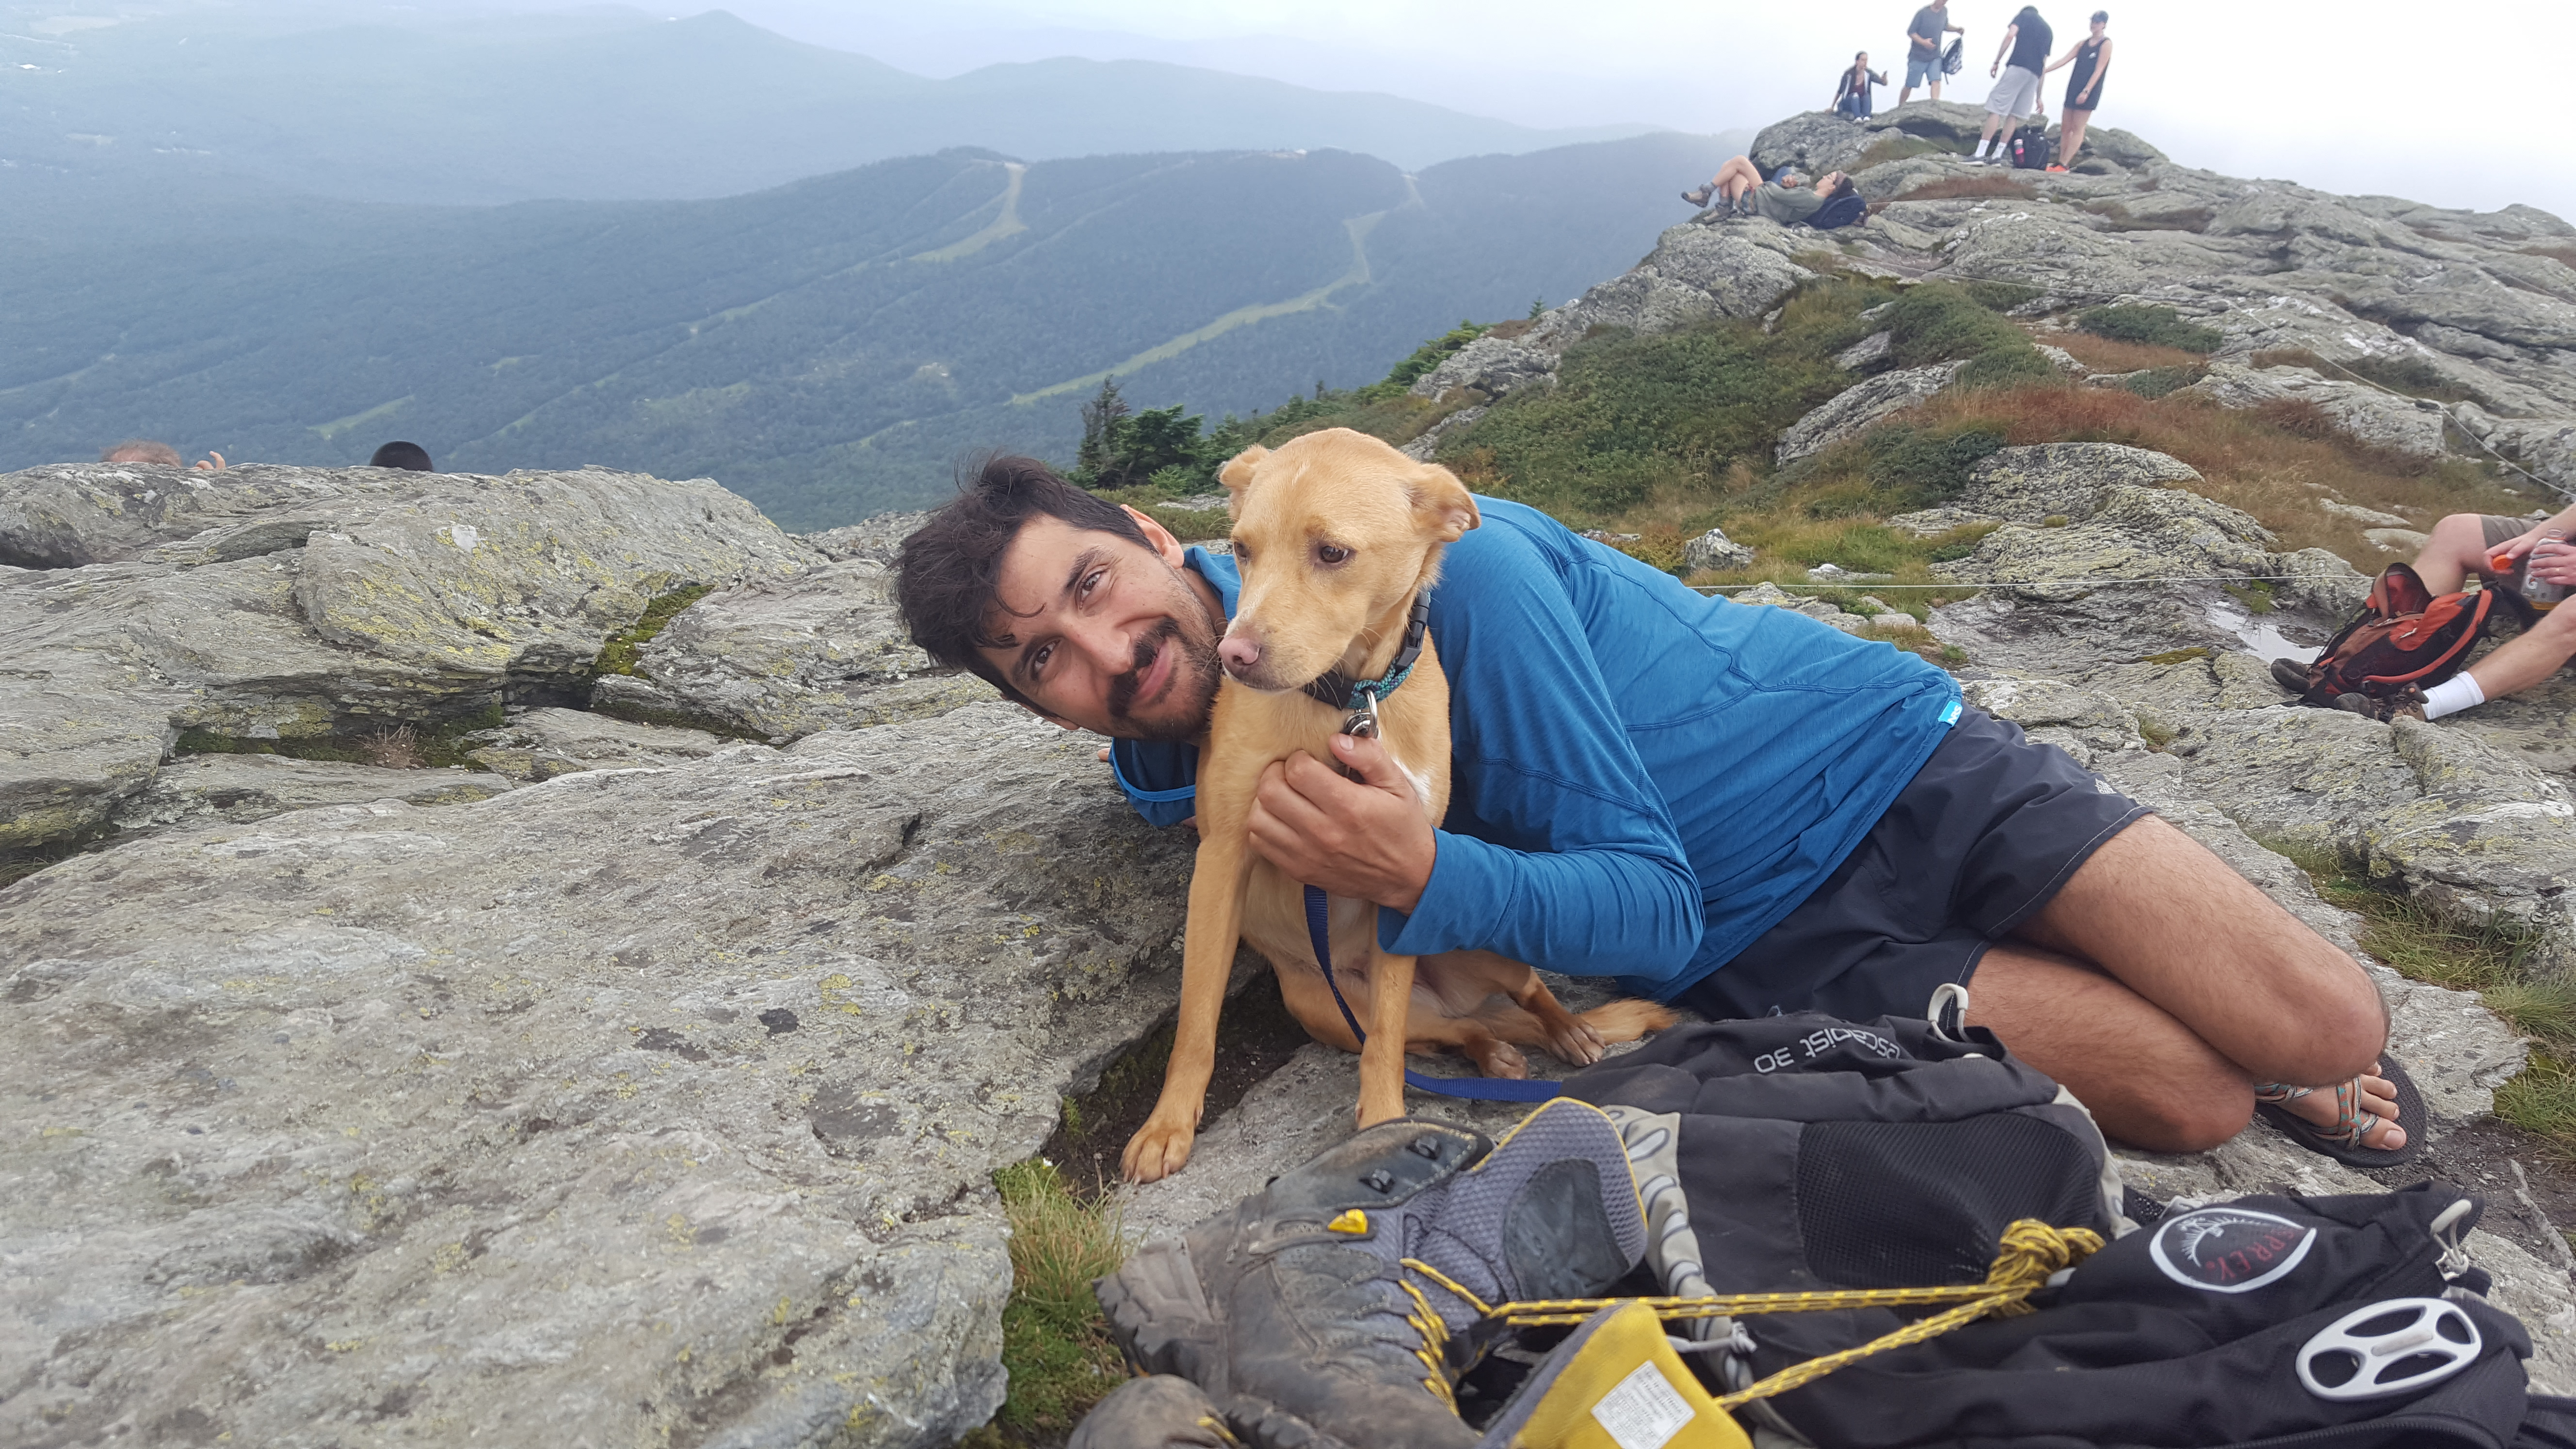 Benny the hiking dog and Dan the boyfriend post for a summit photo on Mount Mansfield in Vermont on the Long Trail.